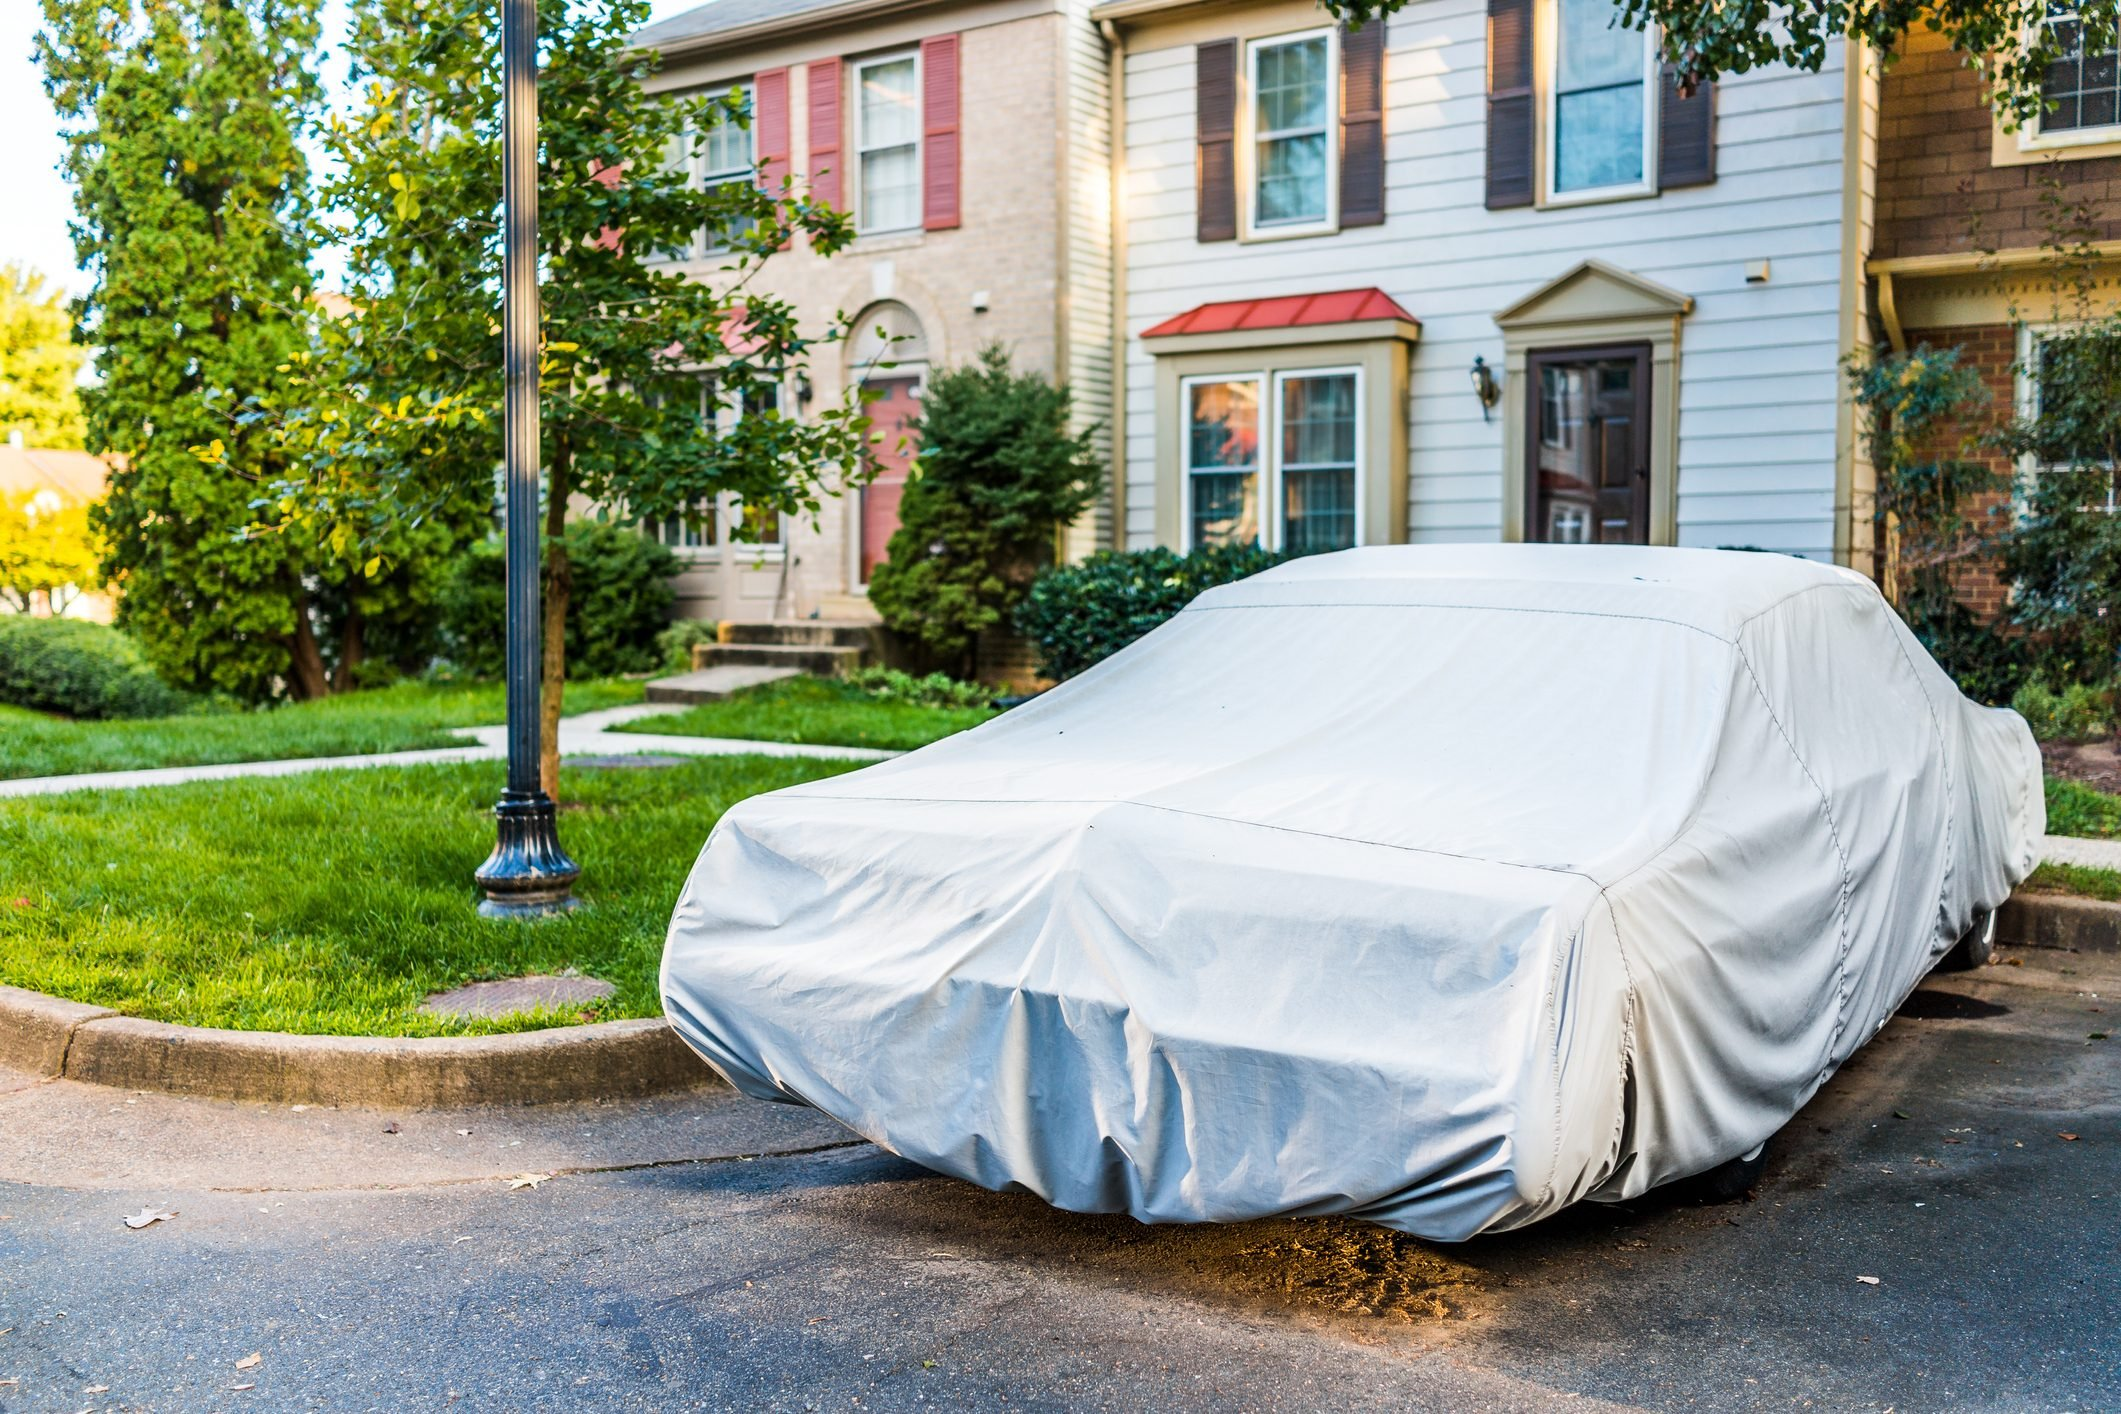 Vintage car covered with protective cover by townhouse for wet weather in parking lot